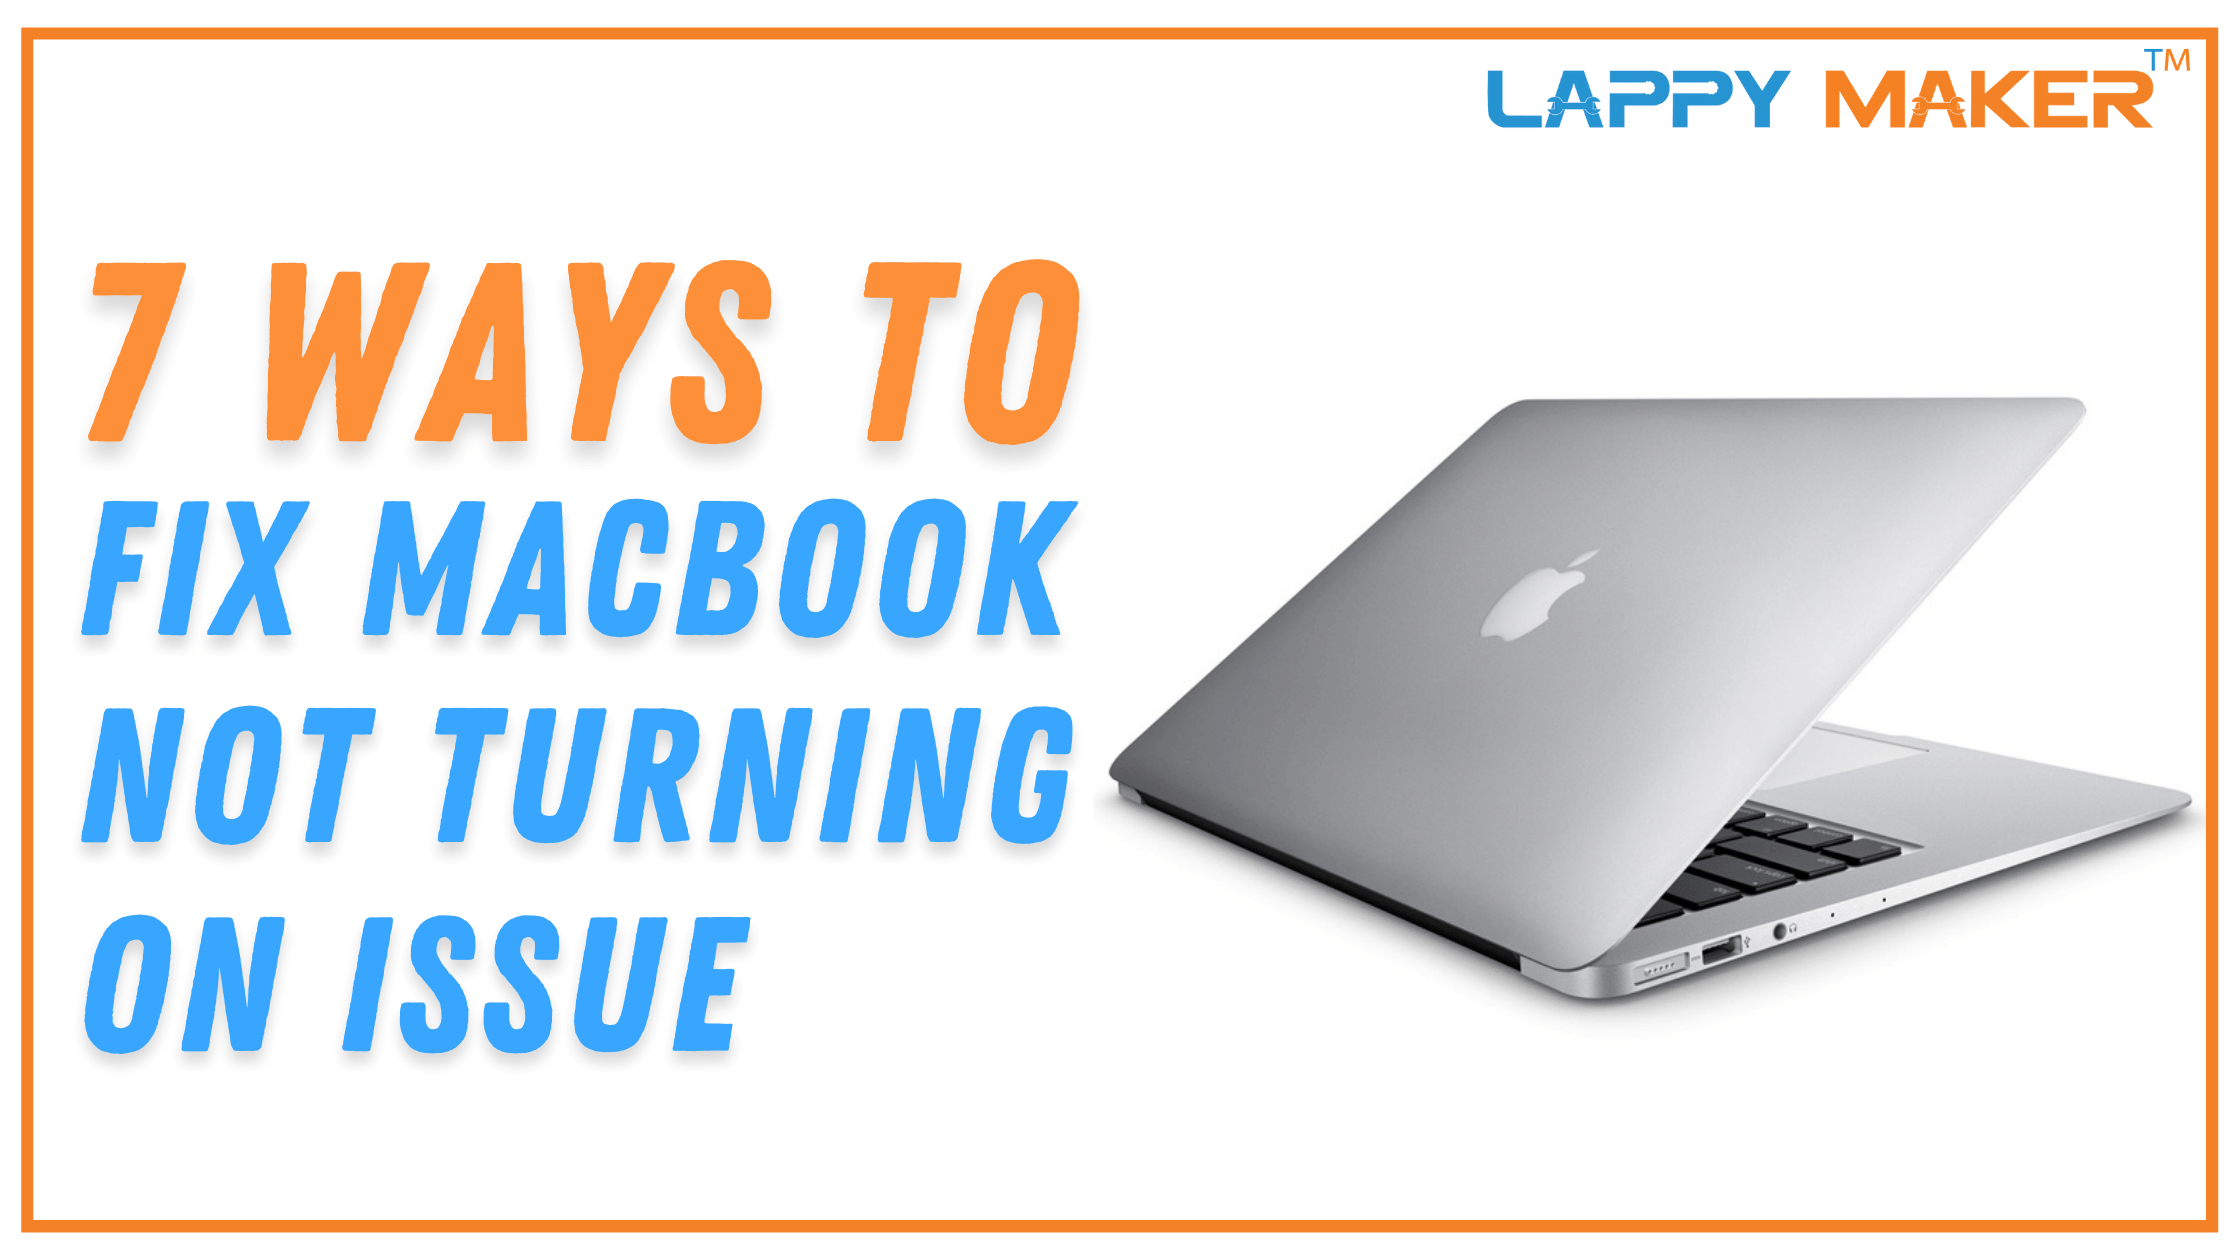 7 Ways to Fix MacBook not Turning On Issue – Lappy Maker